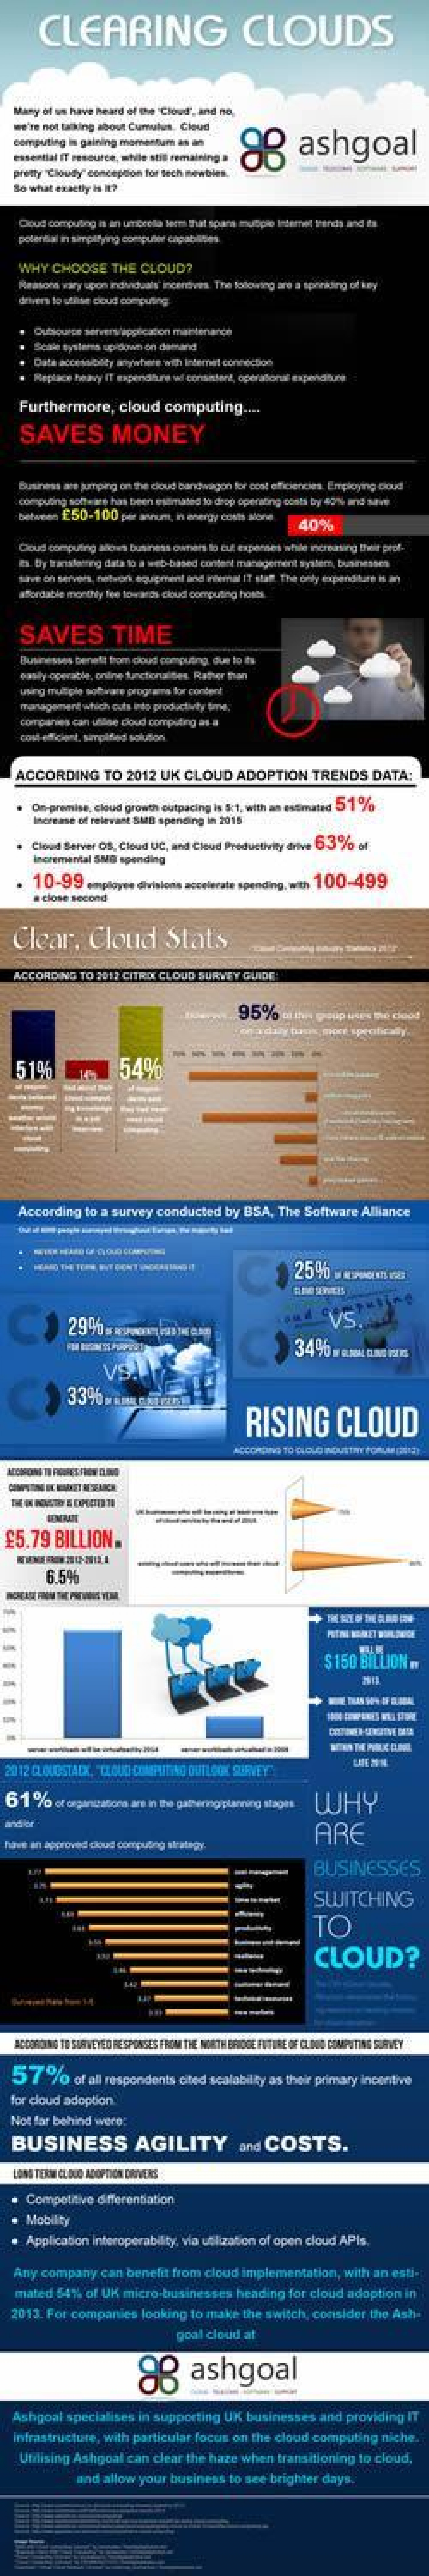 Clearing Clouds Infographic